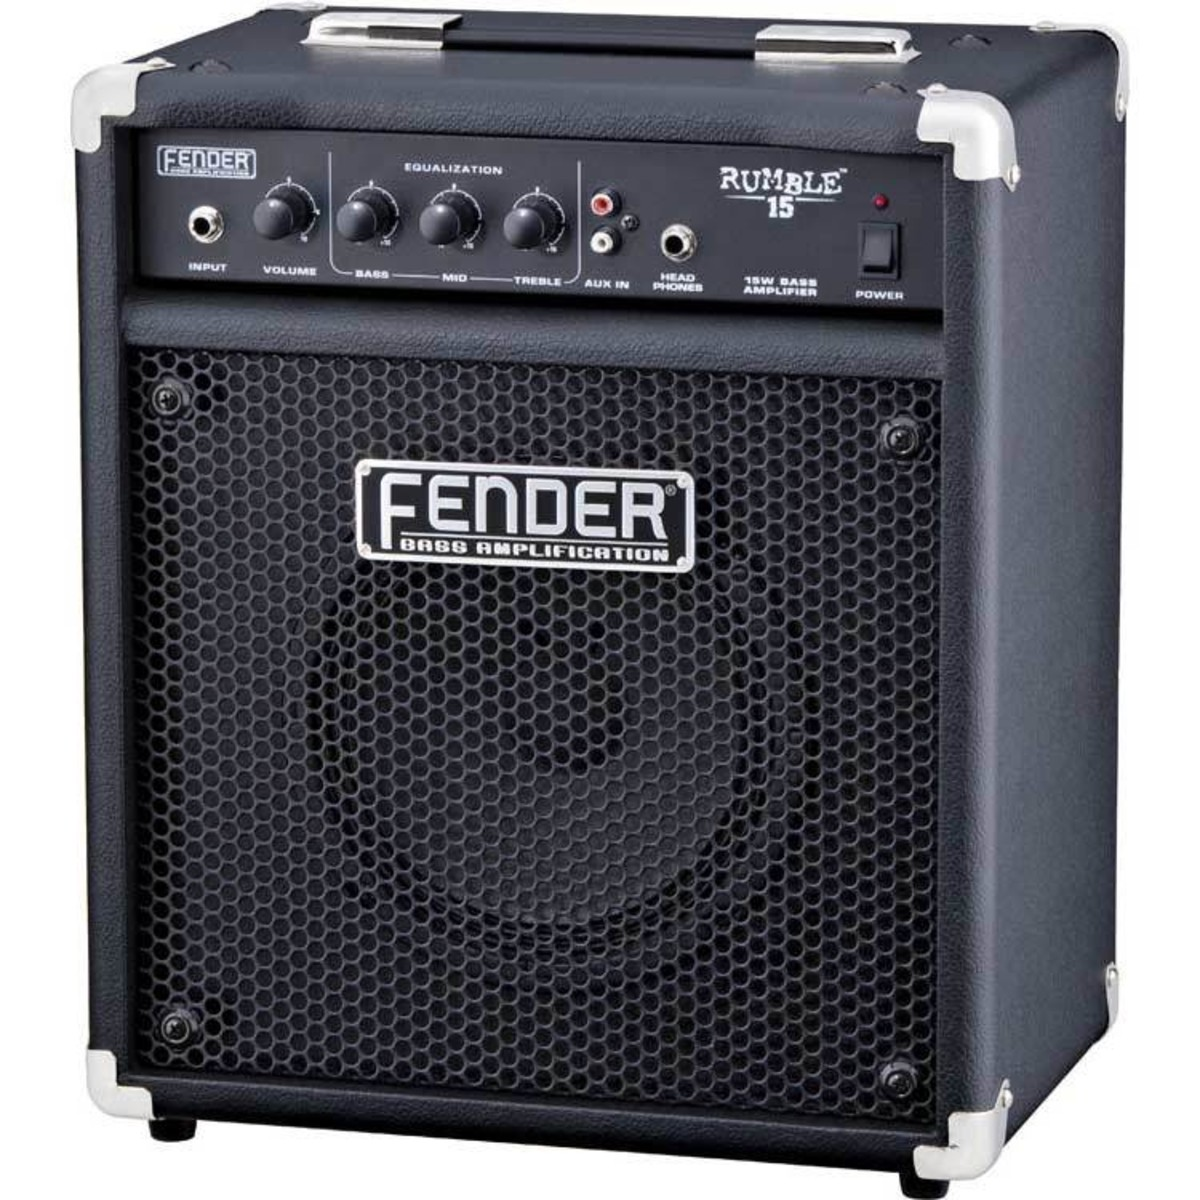 fender rumble 15 bass combo amp nearly new at. Black Bedroom Furniture Sets. Home Design Ideas